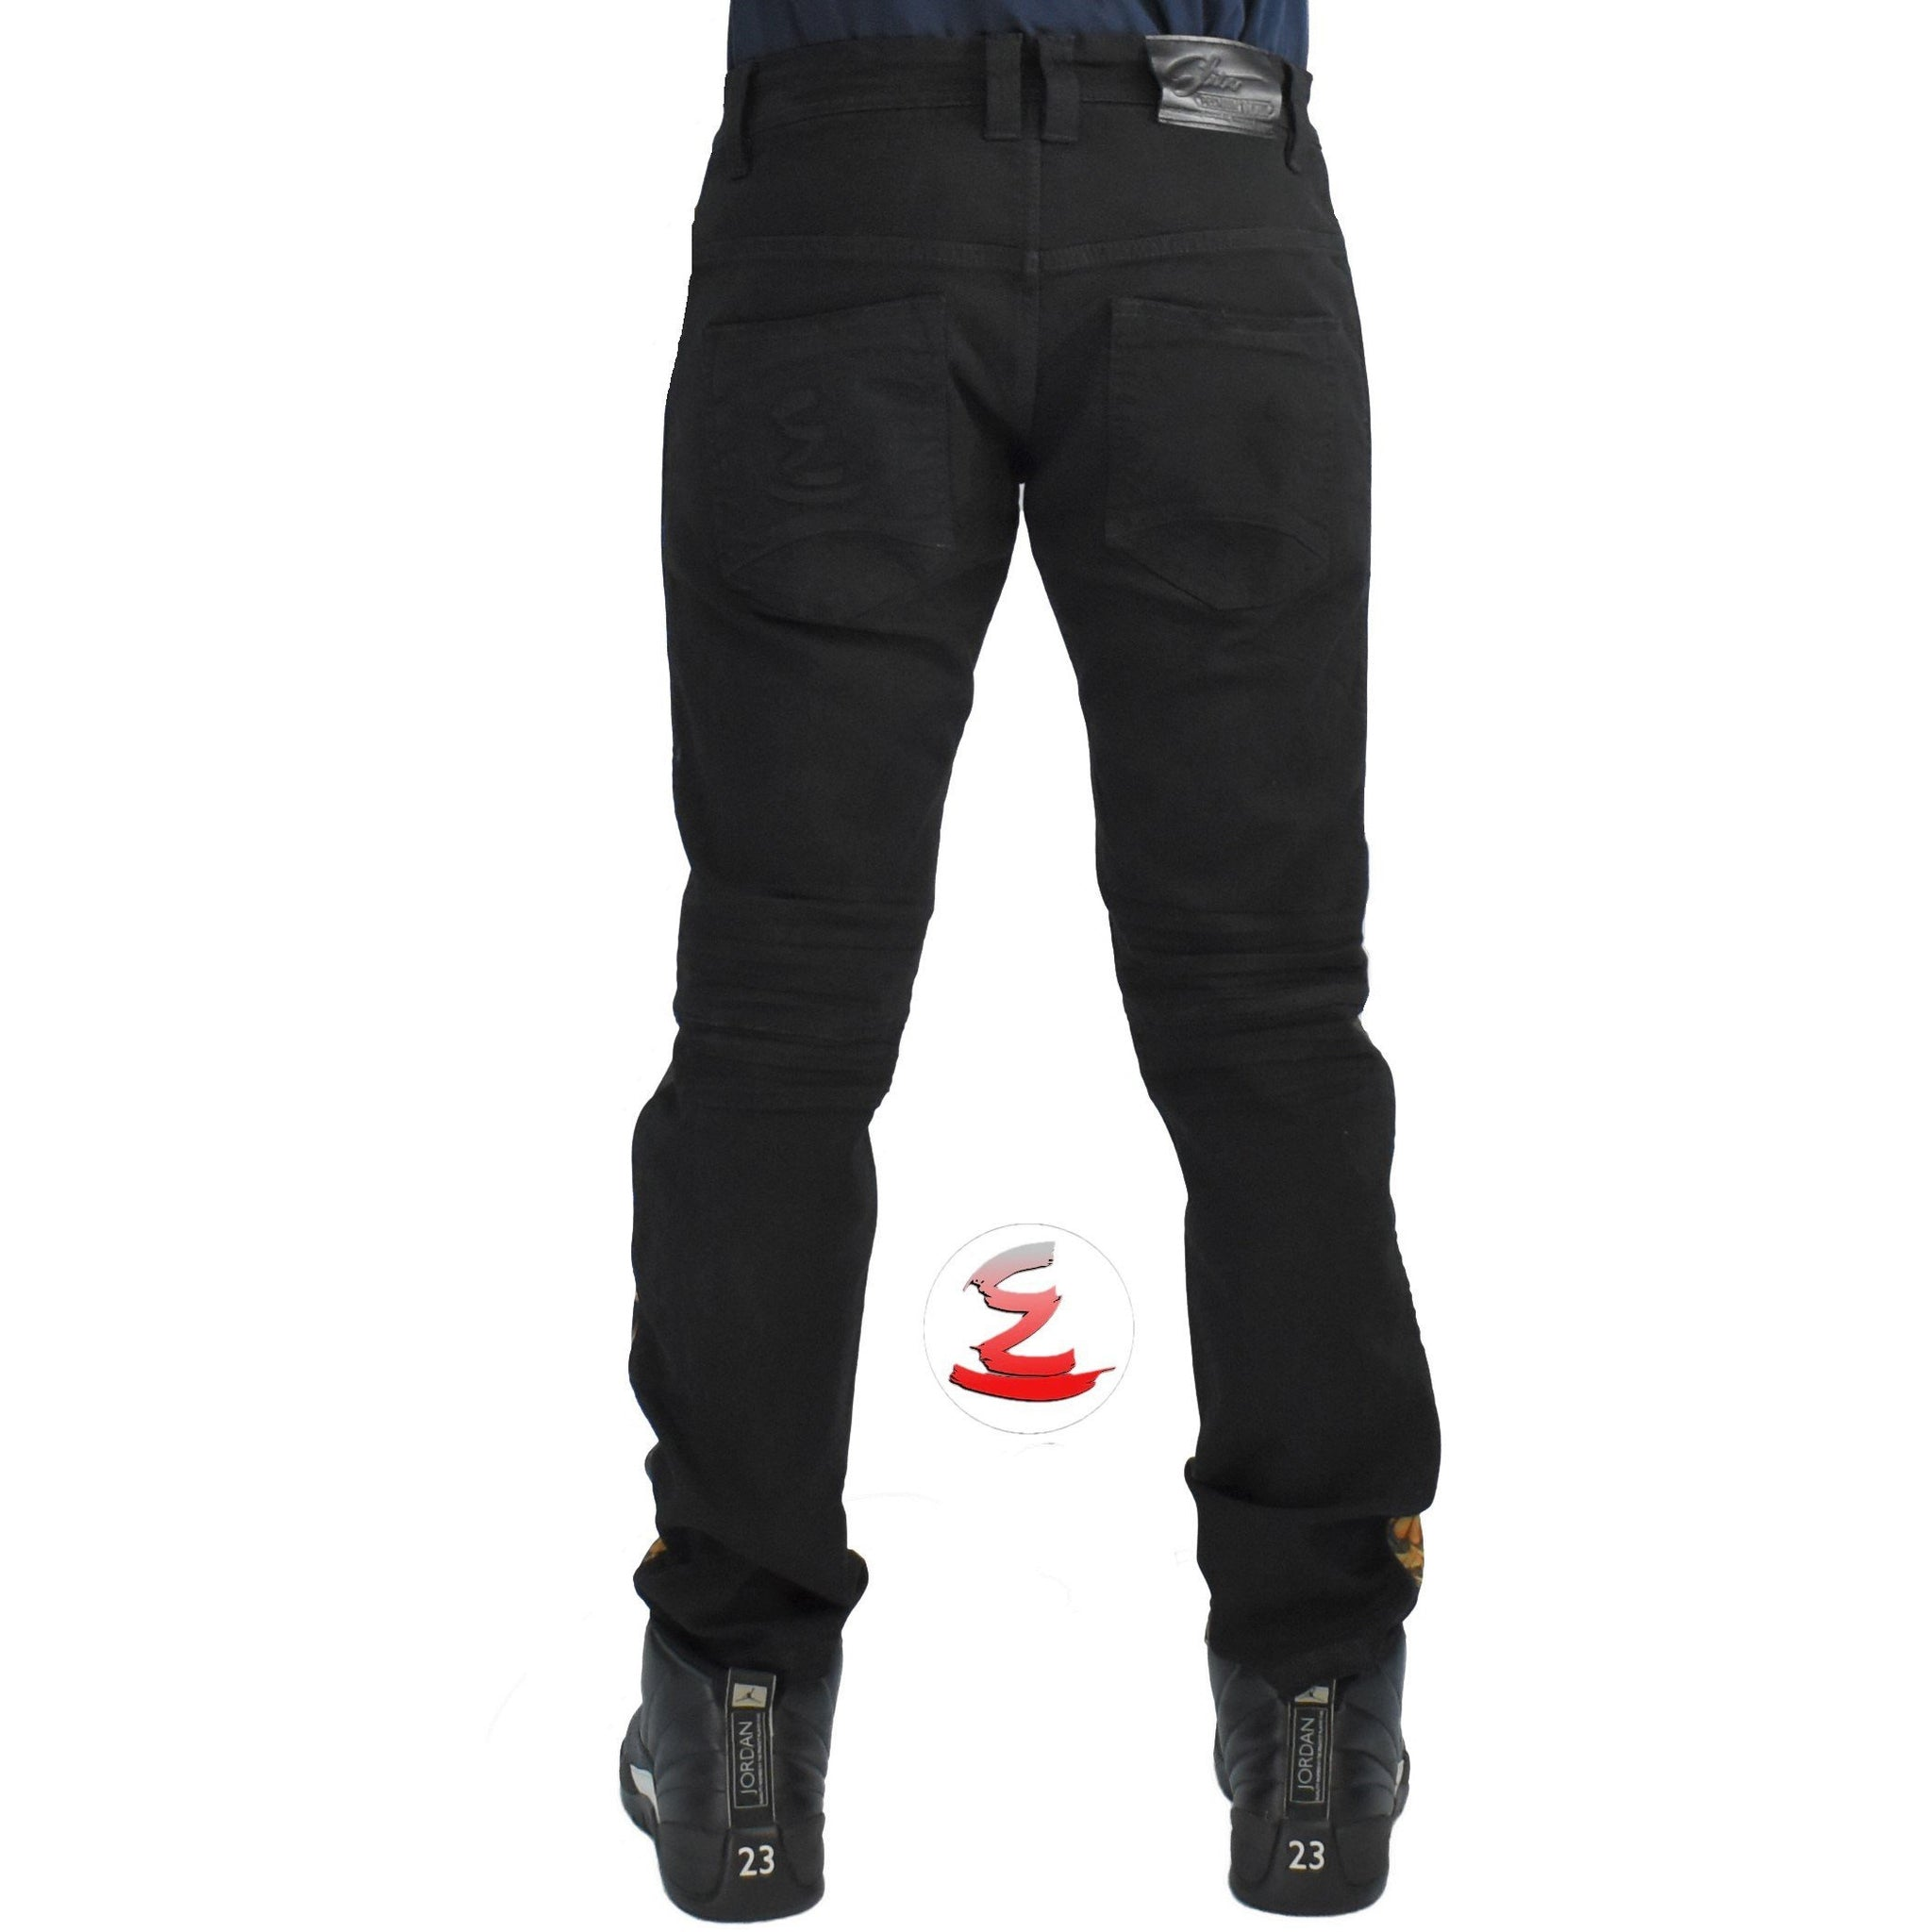 Black Tamer Jeans - Elite Premium Denim